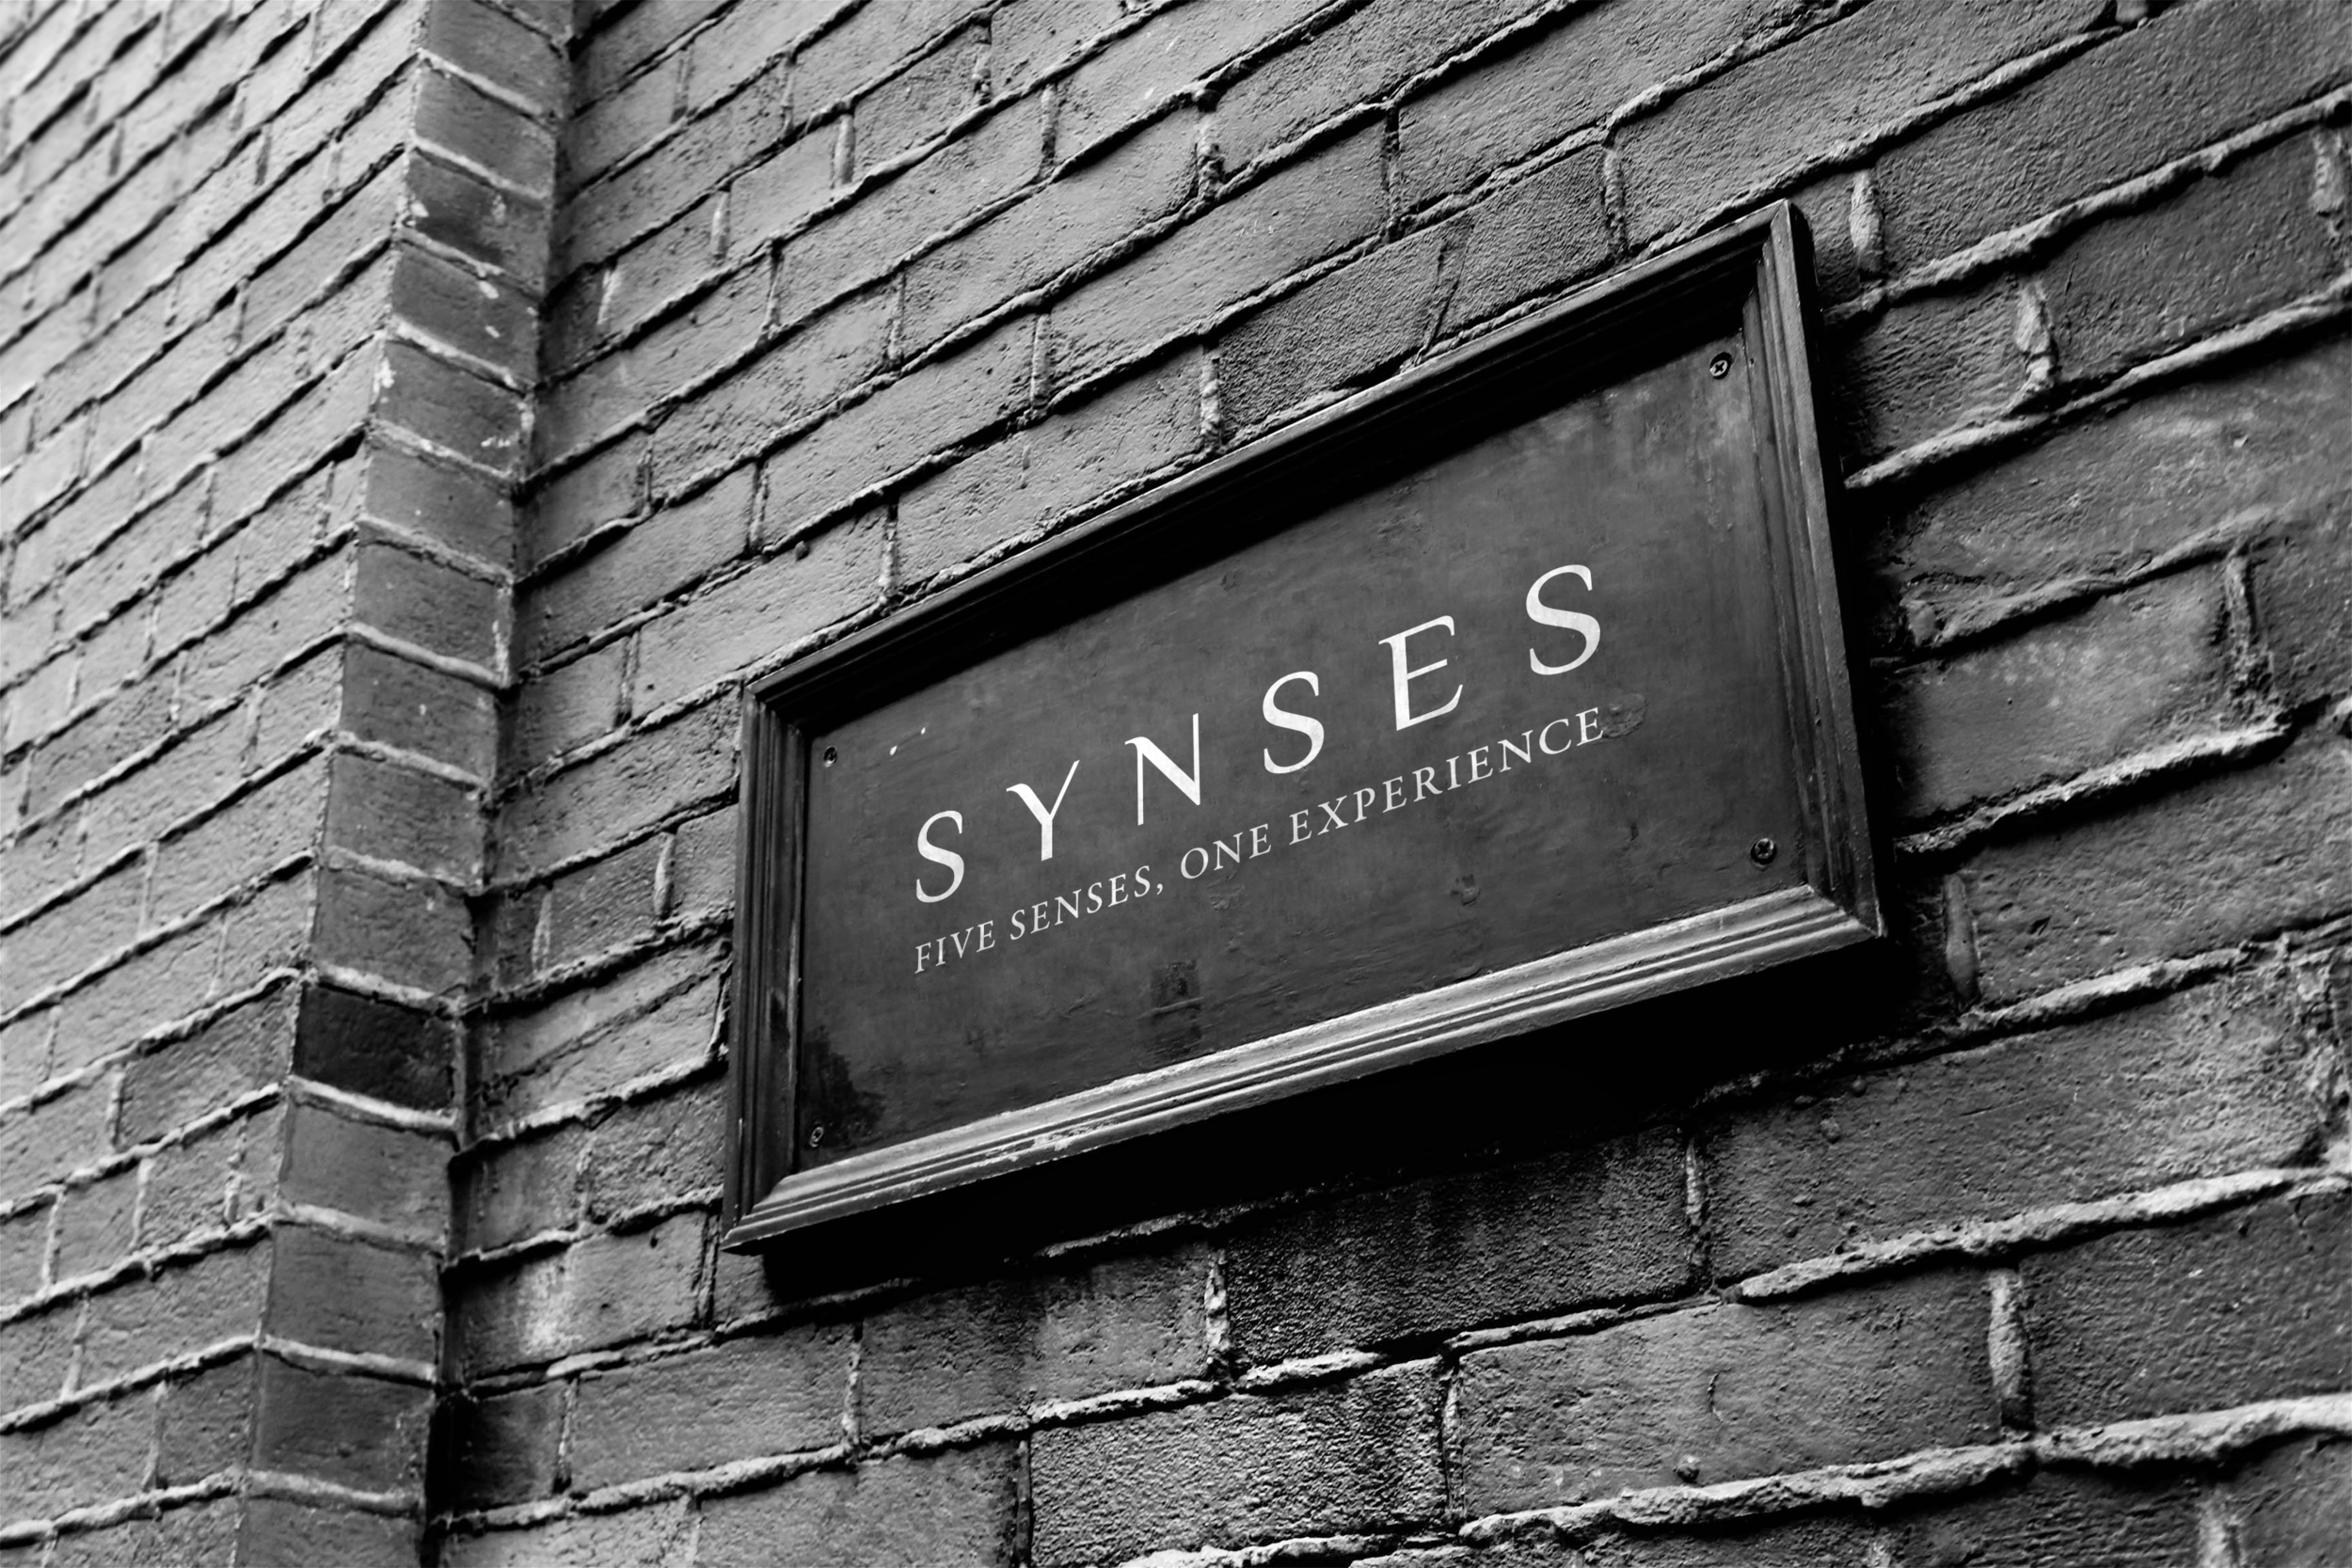 Synses board outside grungy